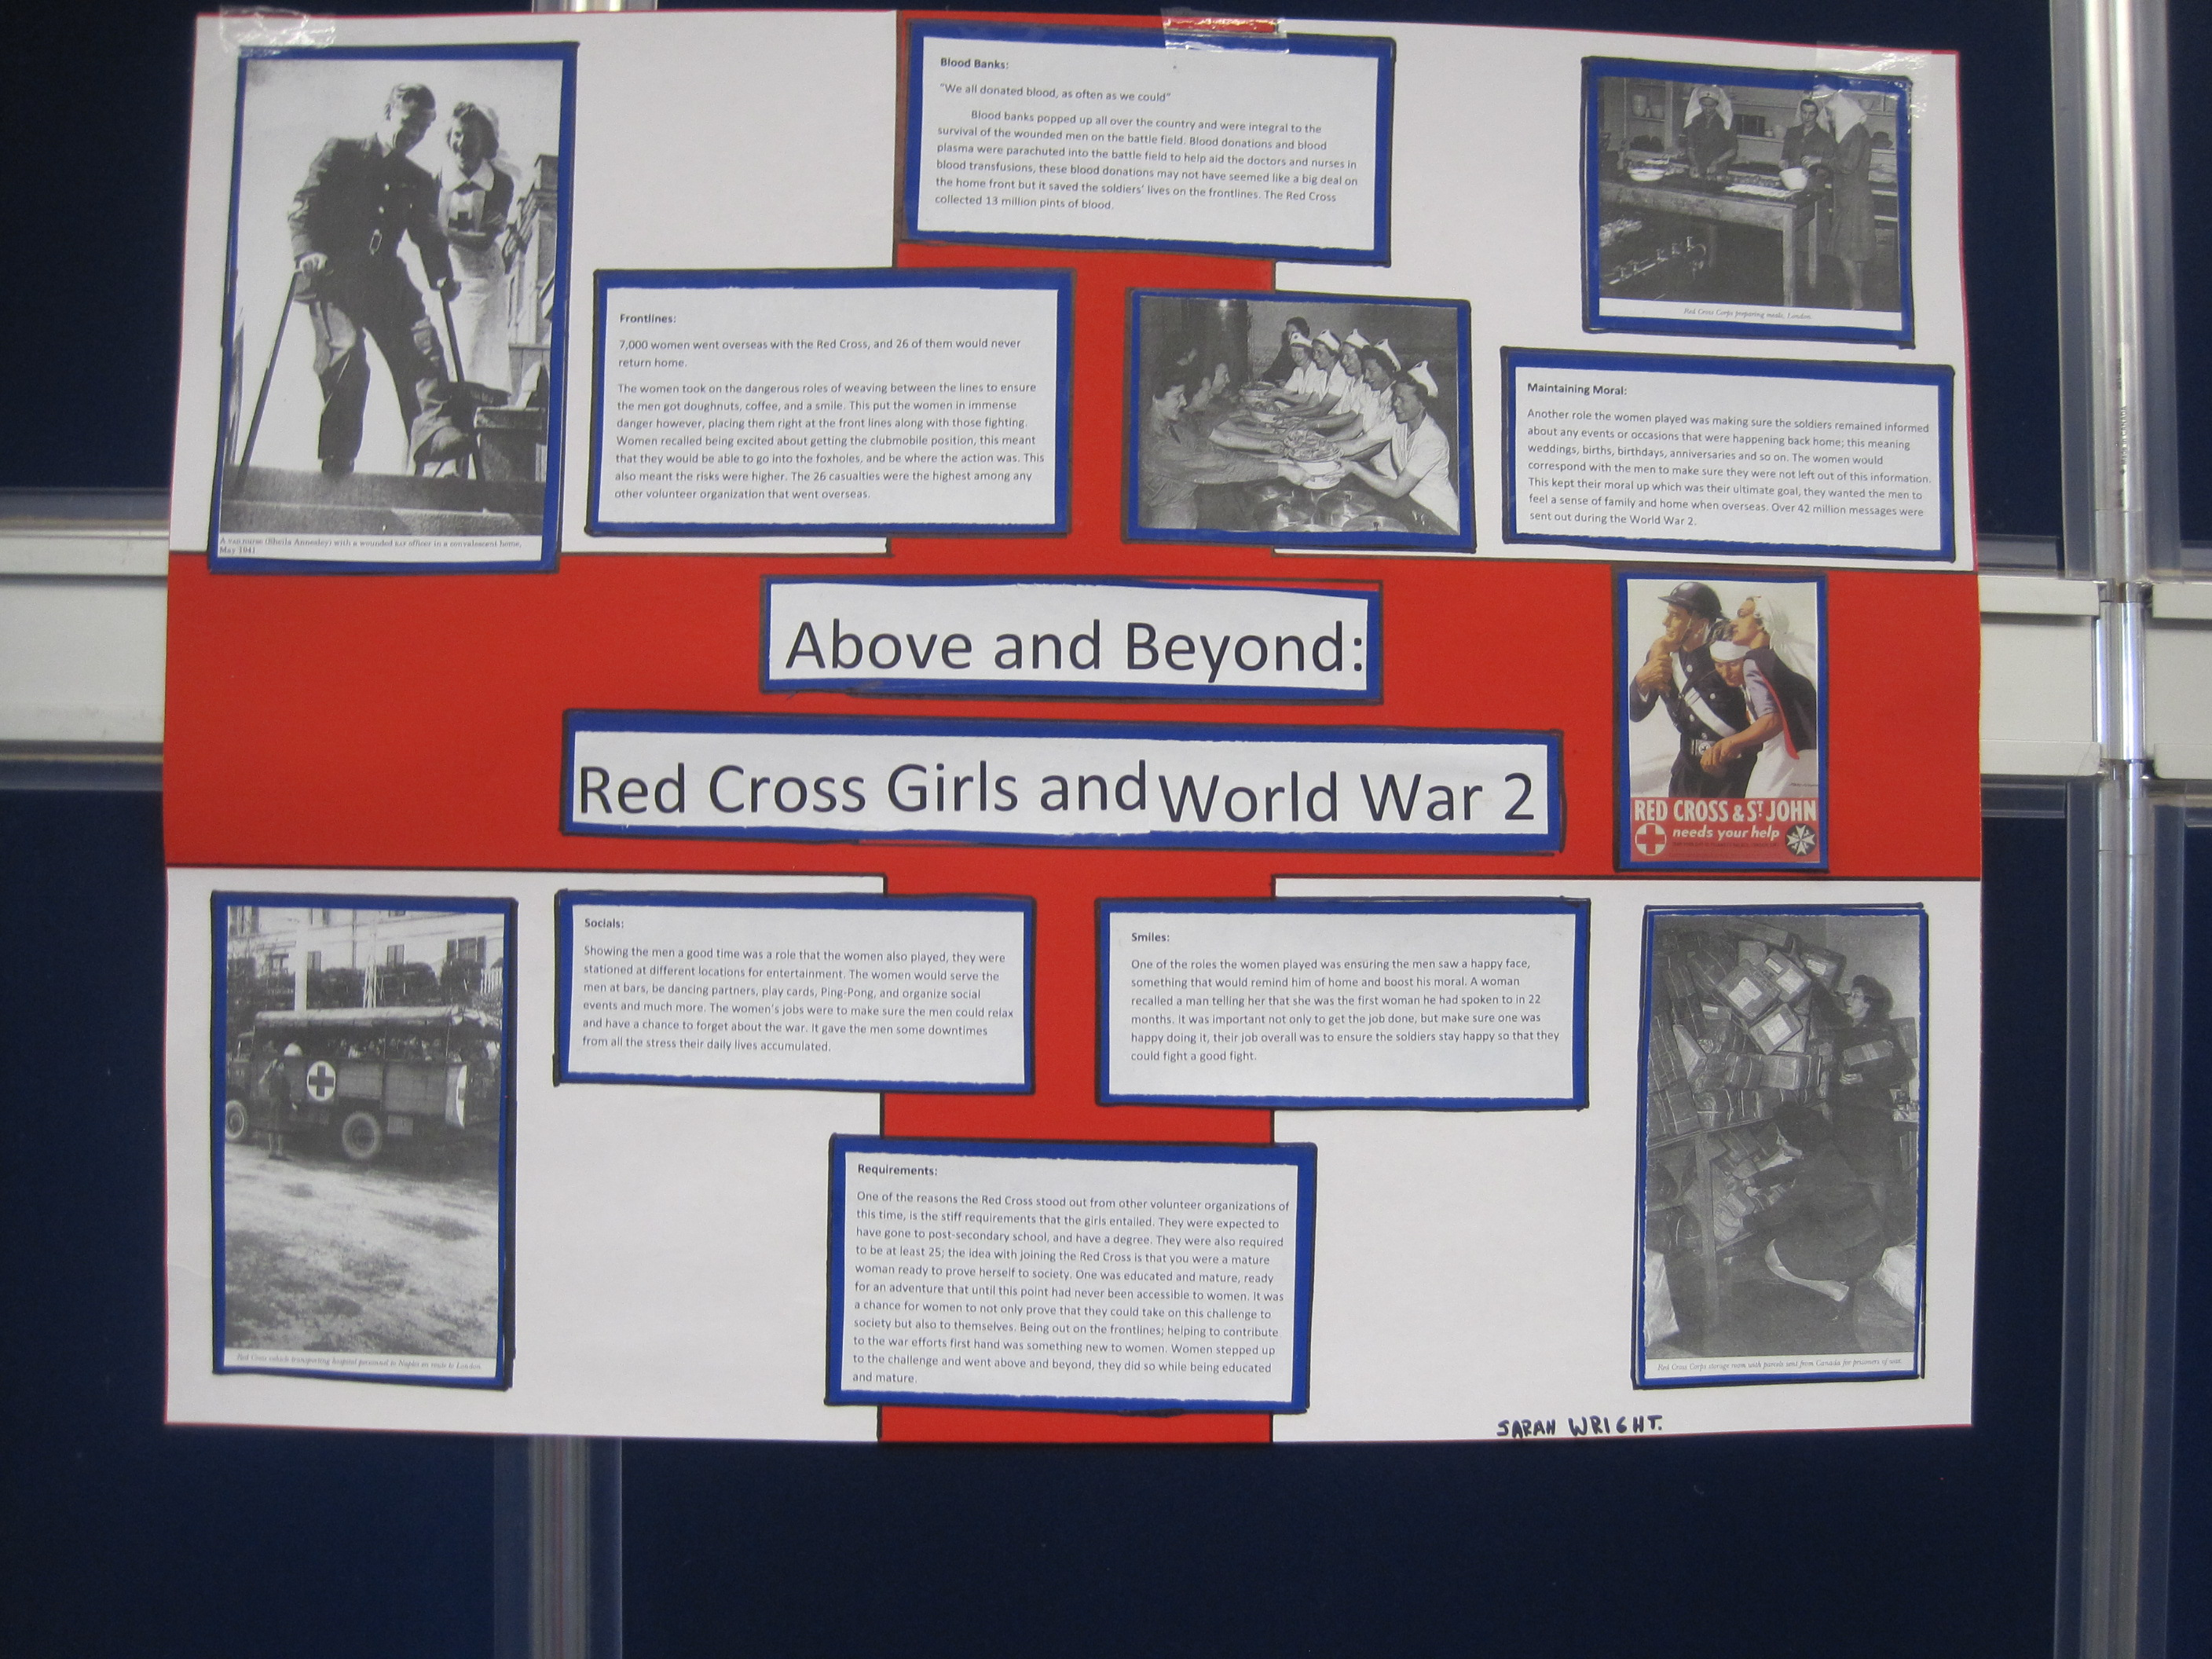 Red Cross and Women during World War Two